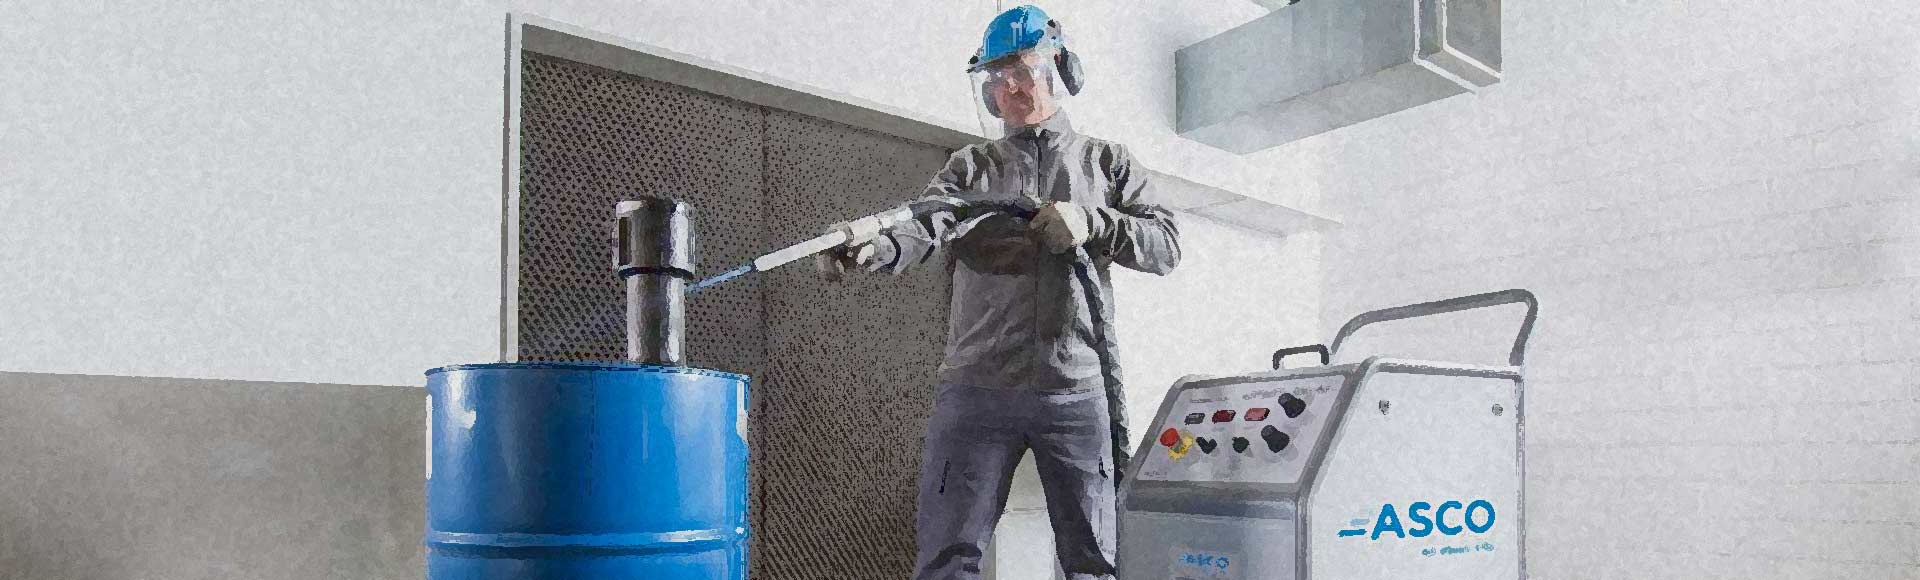 Welcome to Dry & Wet Ice Blasting & Cleaning by Elmer Wallace Ltd